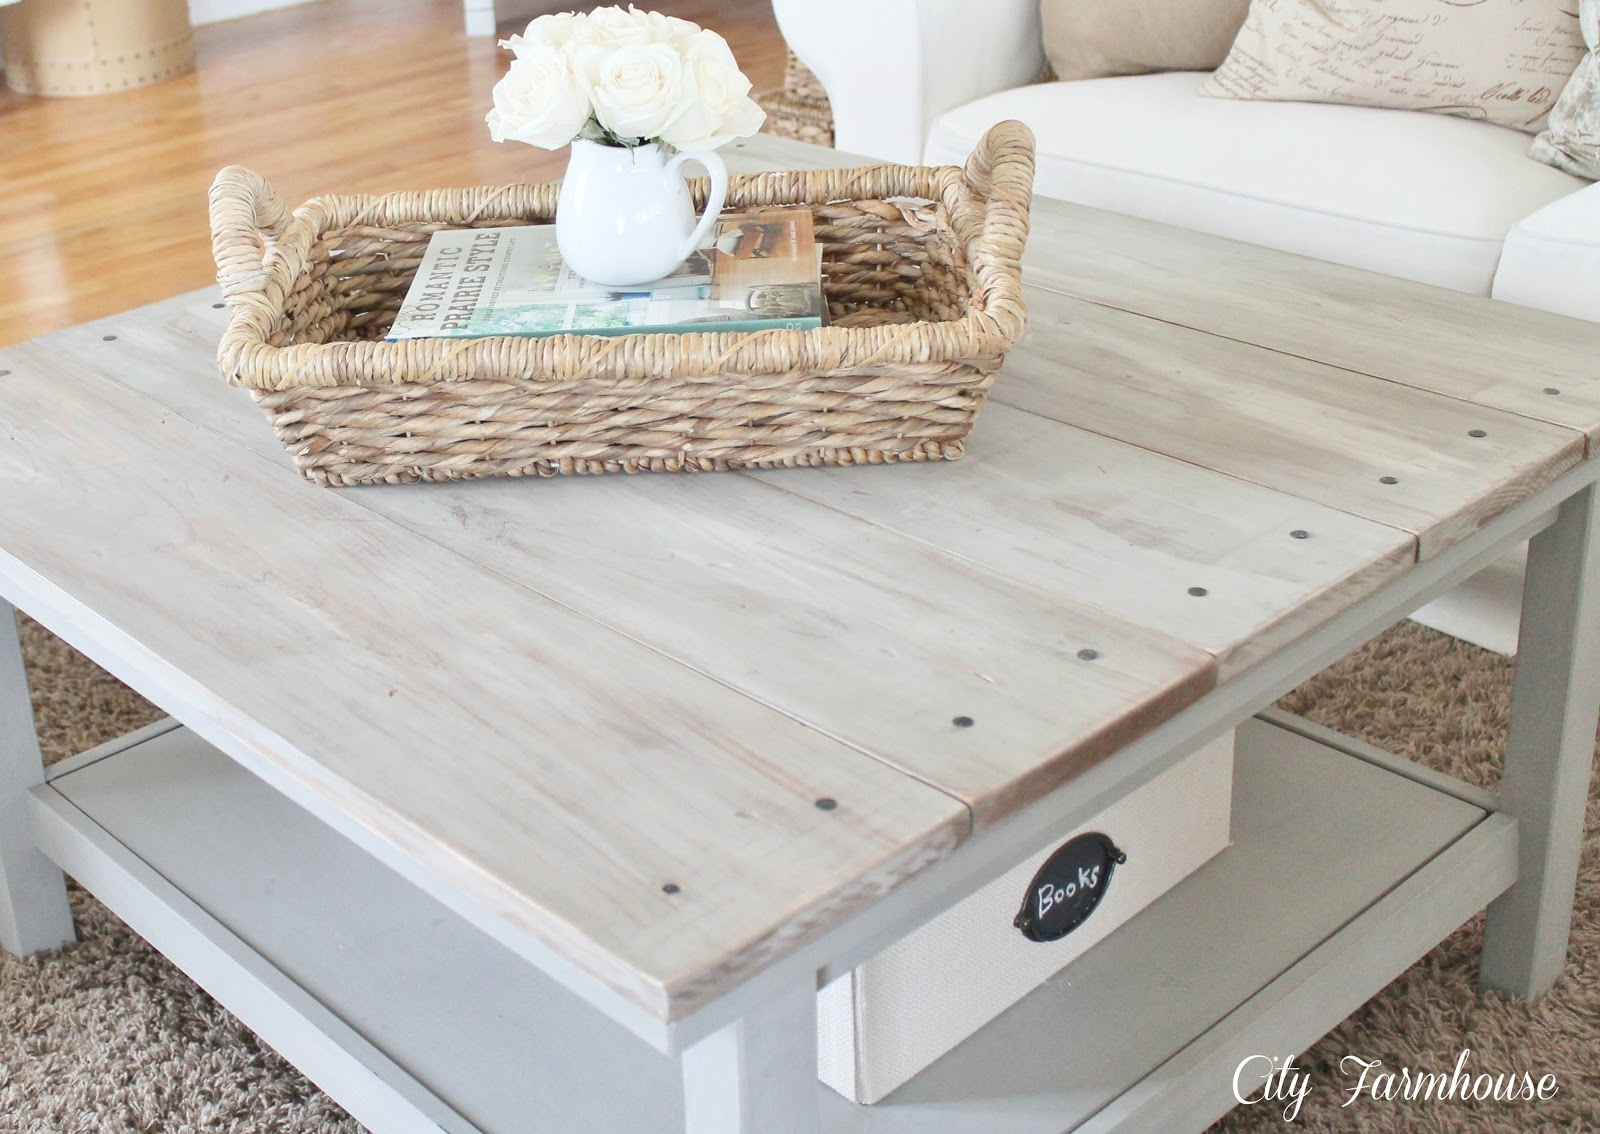 Inspiration relooker une table basse la nouvelle page - Relooker une table de salon ...